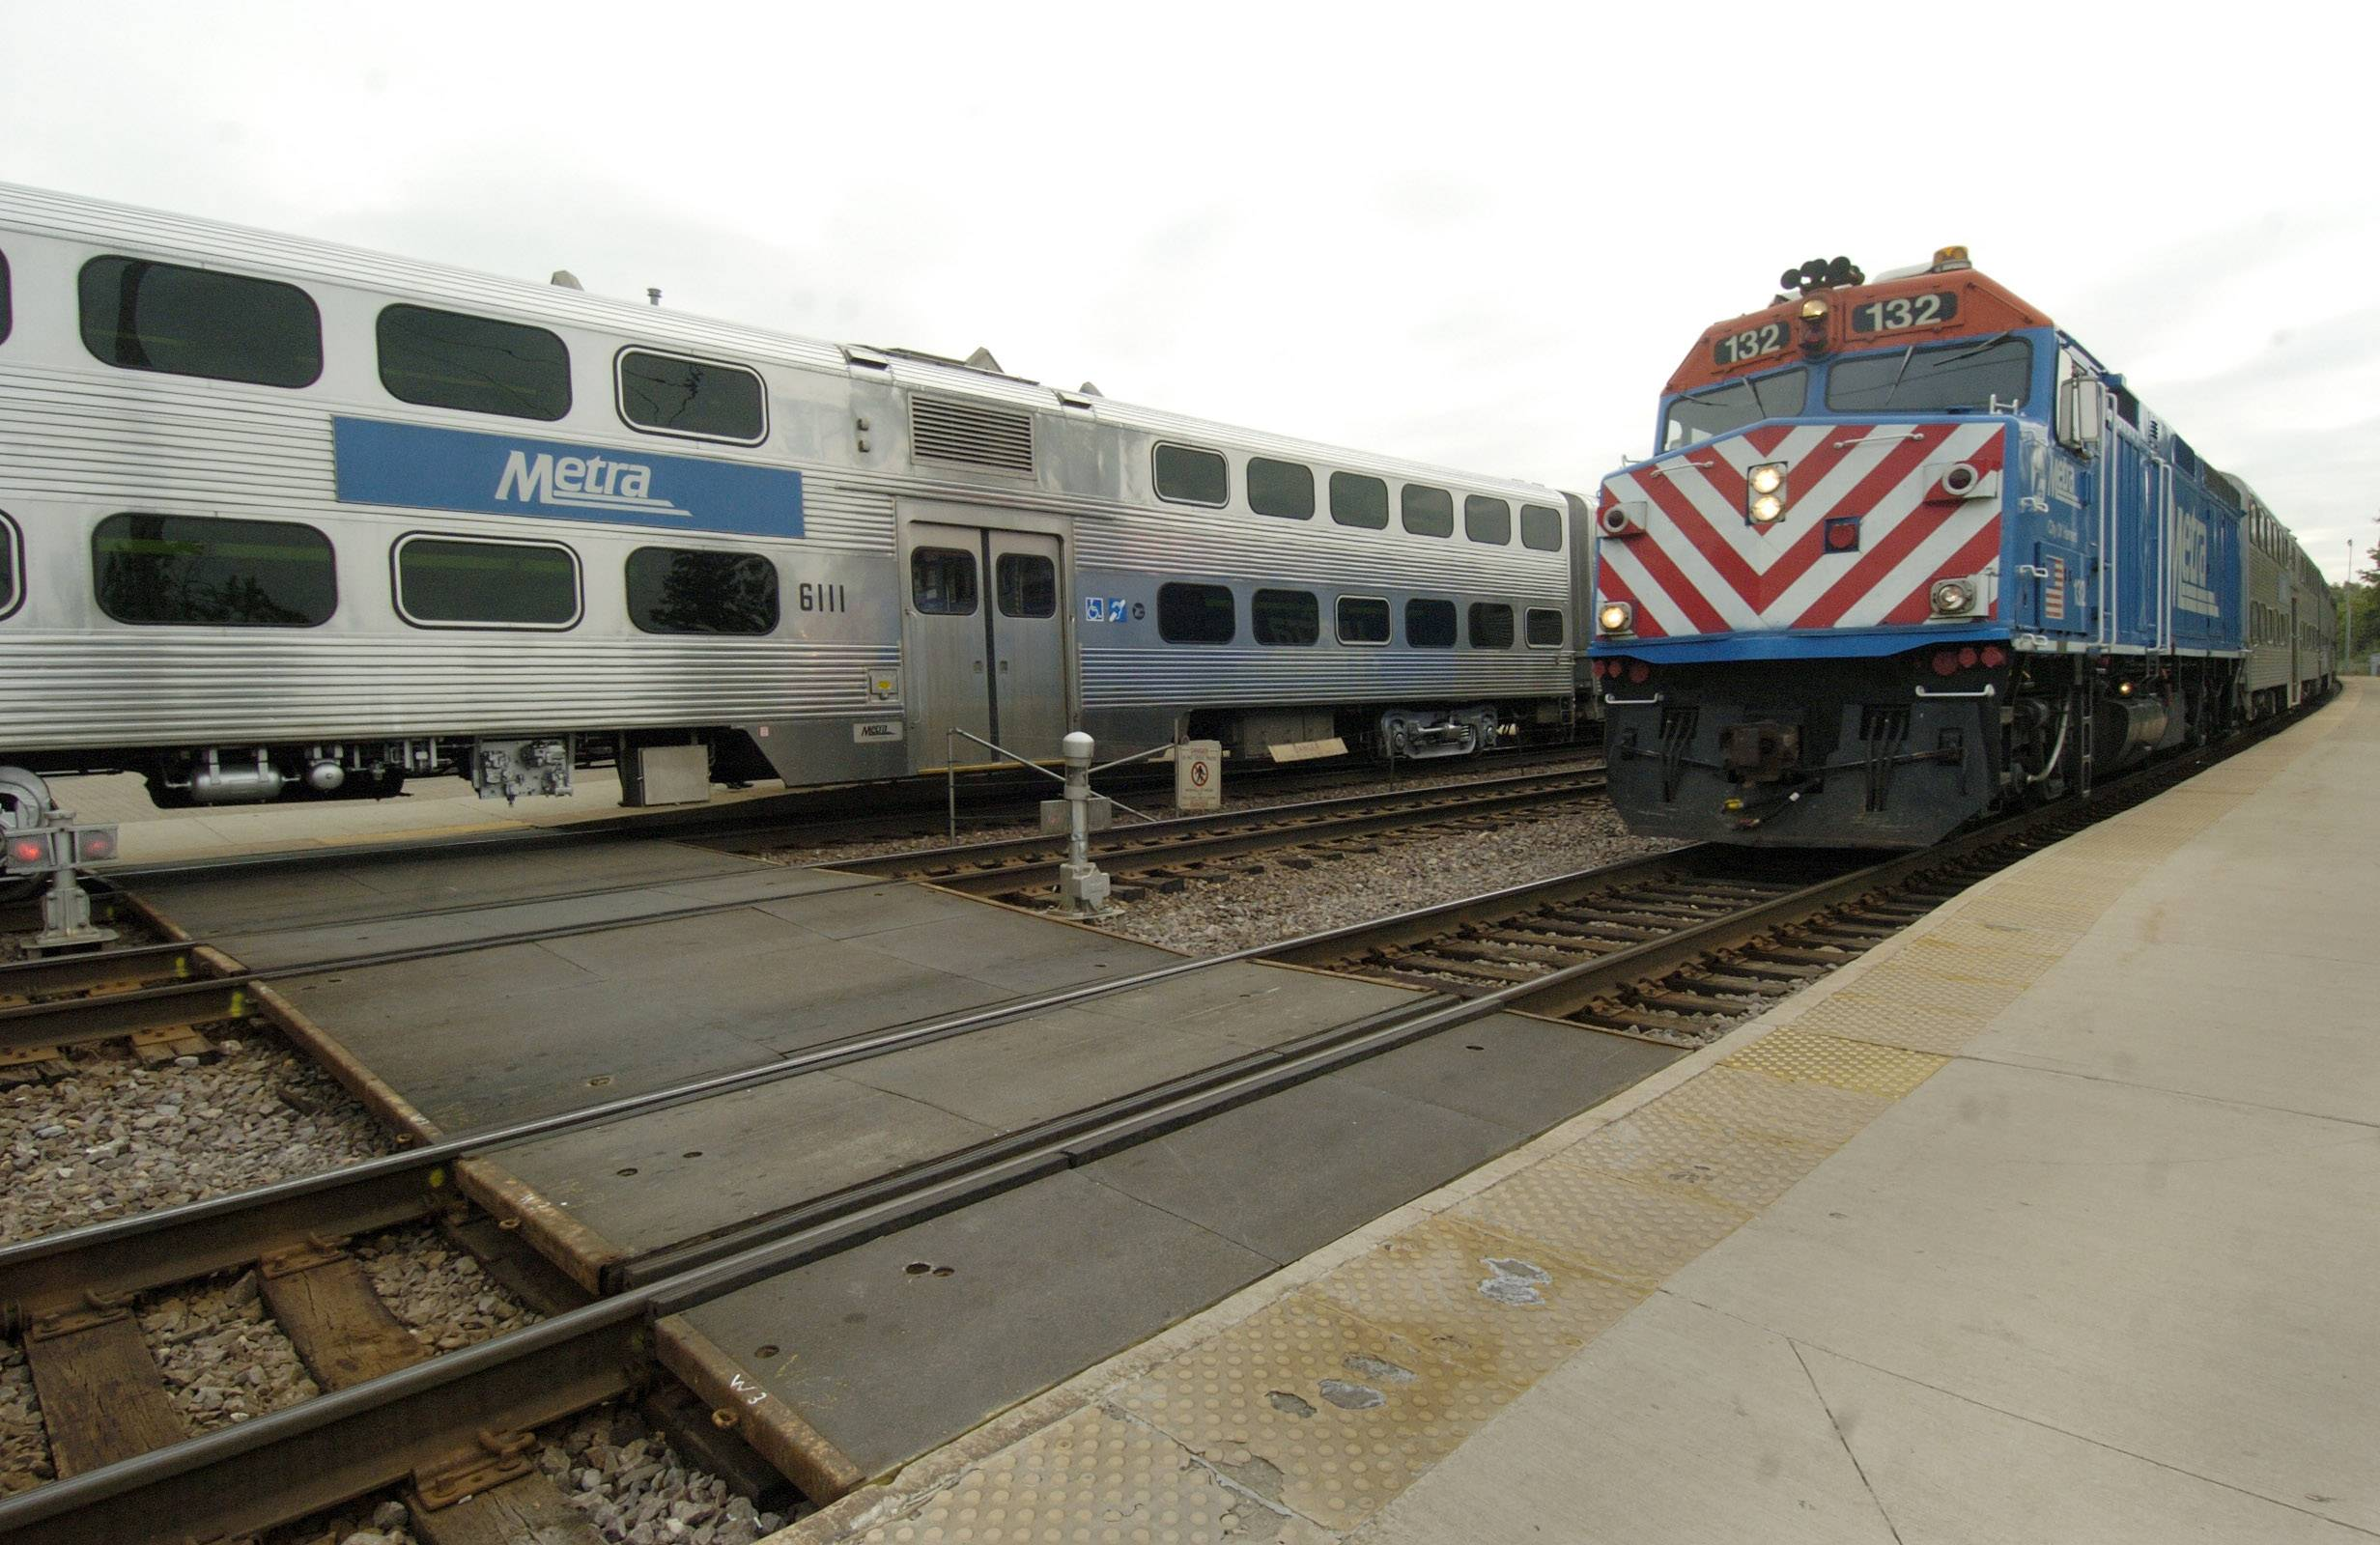 Crash-prevention braking system could be 4 years away on some Metra lines